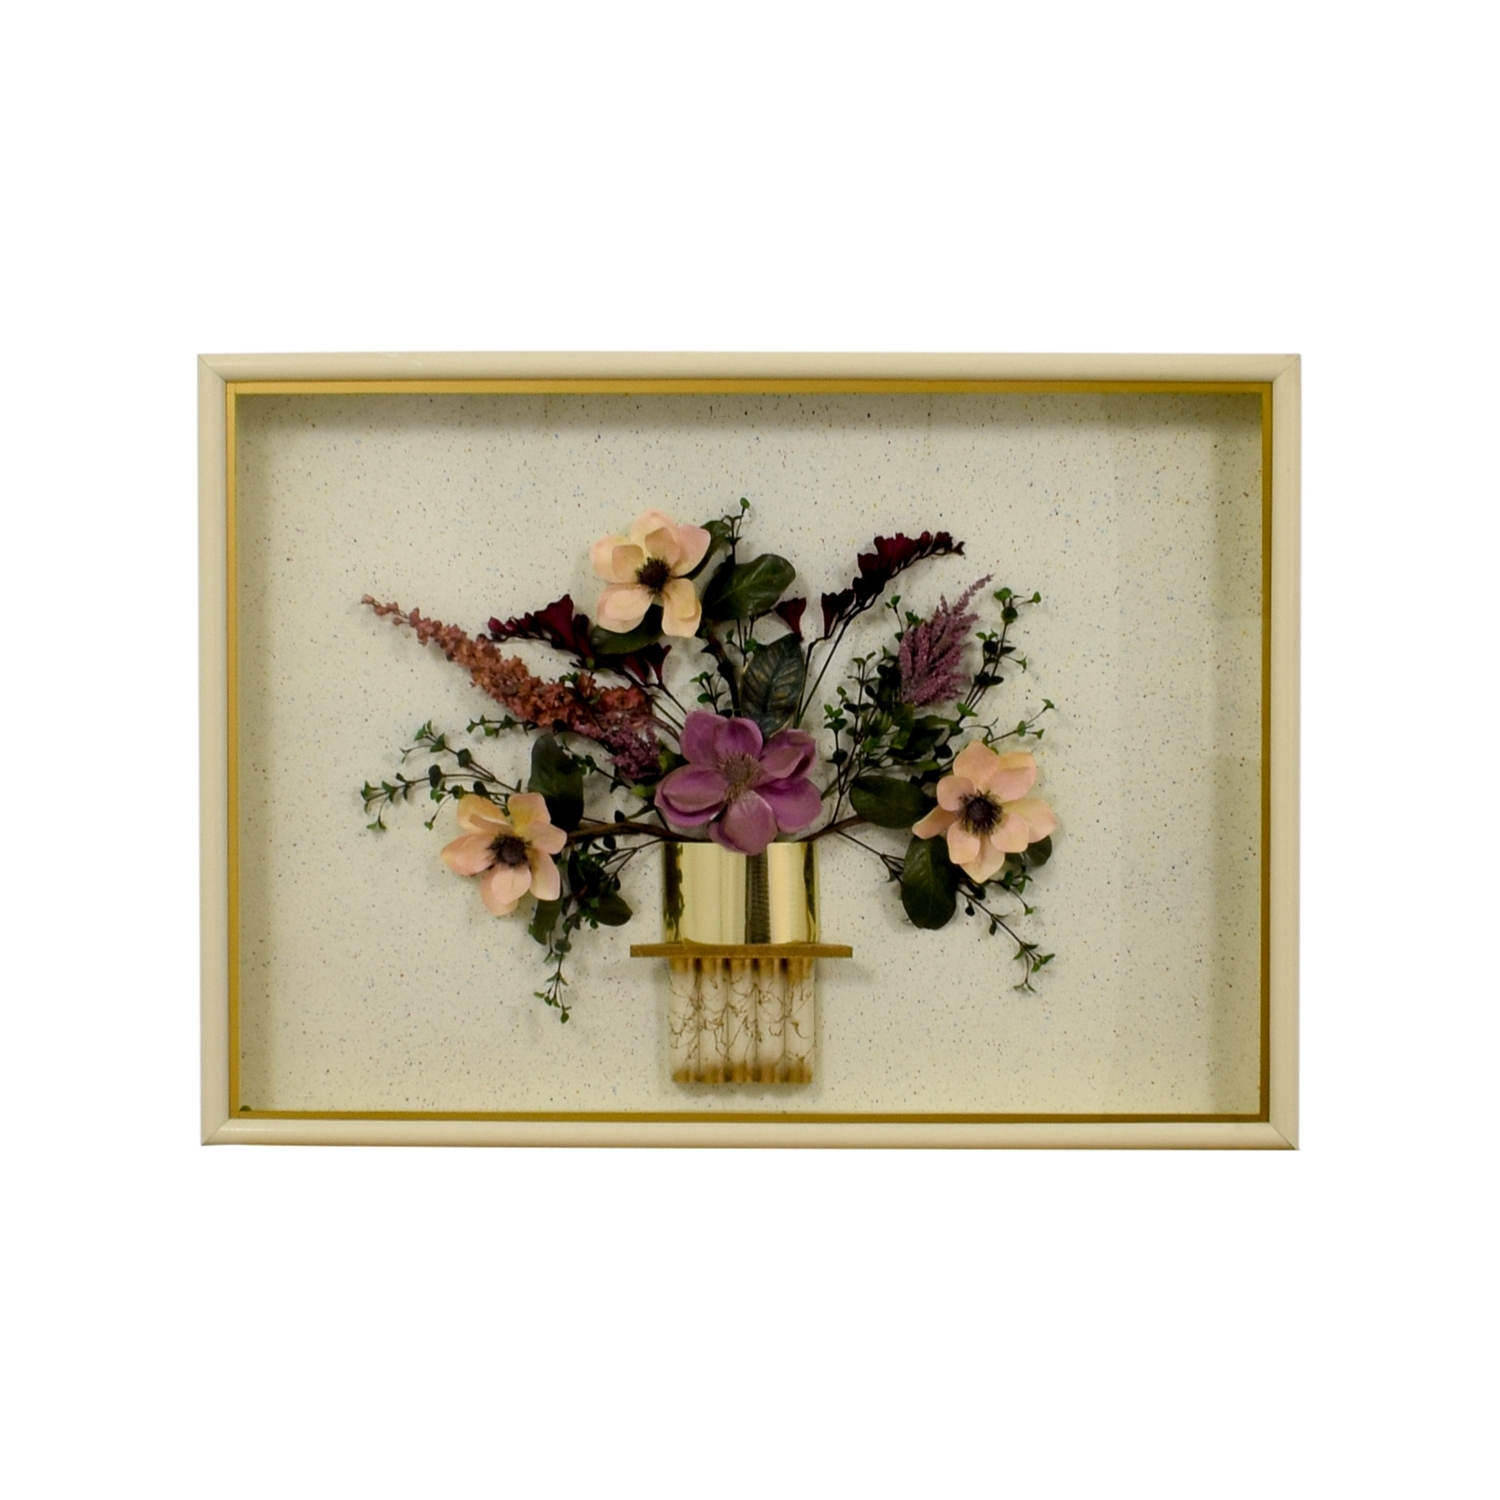 [%90% Off – Floral Wall Art / Decor Intended For Current Floral Wall Art|Floral Wall Art Pertaining To Most Recent 90% Off – Floral Wall Art / Decor|Most Recently Released Floral Wall Art Pertaining To 90% Off – Floral Wall Art / Decor|Most Up To Date 90% Off – Floral Wall Art / Decor With Regard To Floral Wall Art%] (View 1 of 20)